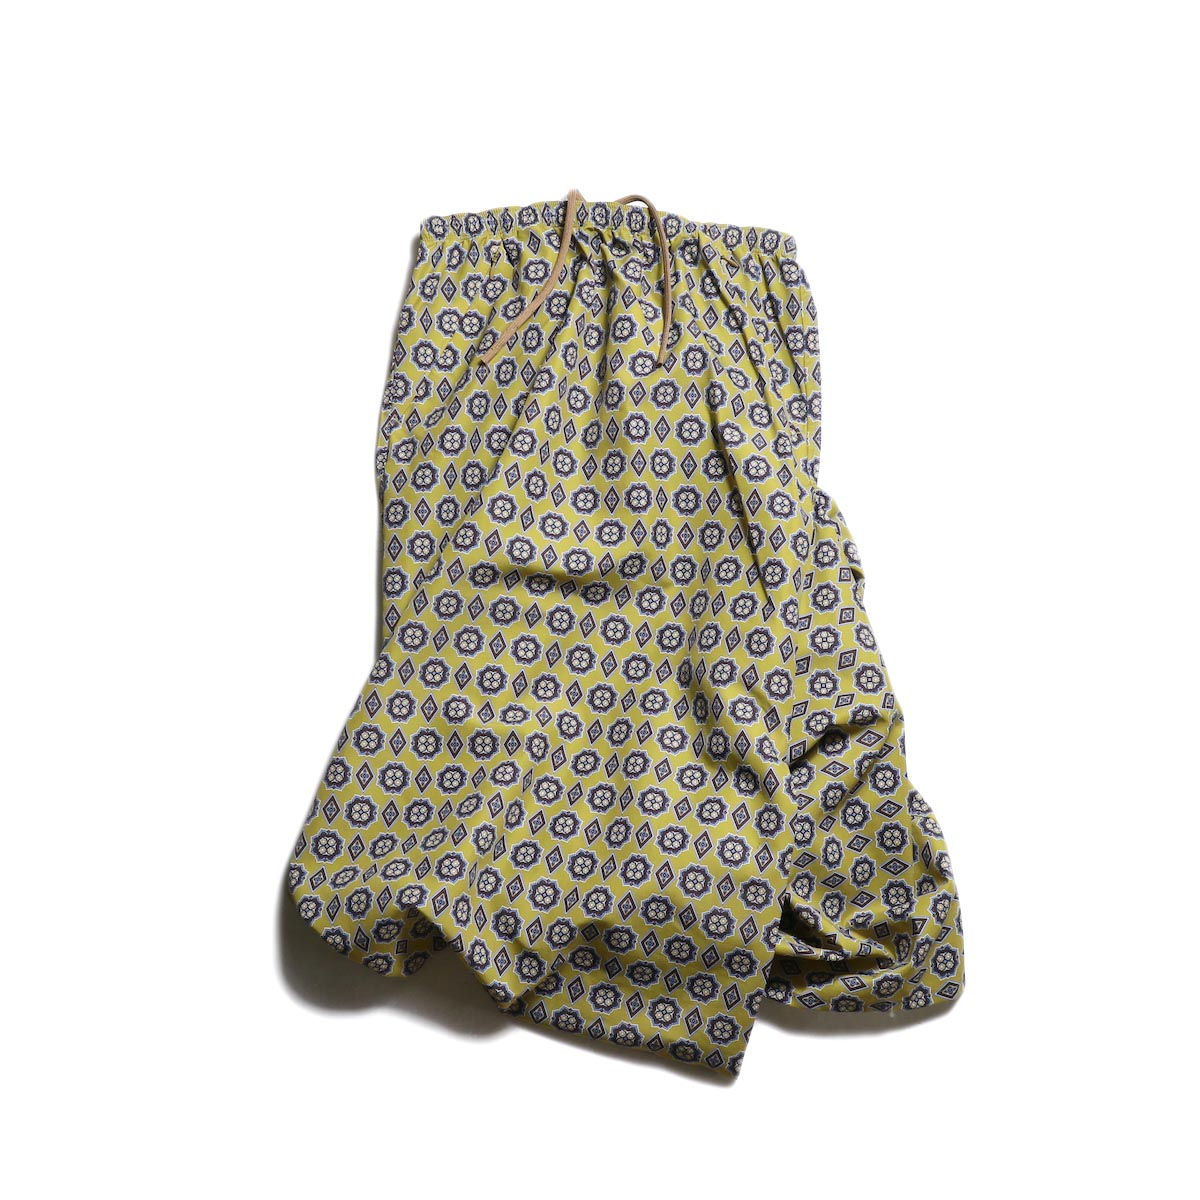 Needles(Ladie's) / Conti Skirt -Nylon Tussore/Print (Khaki)